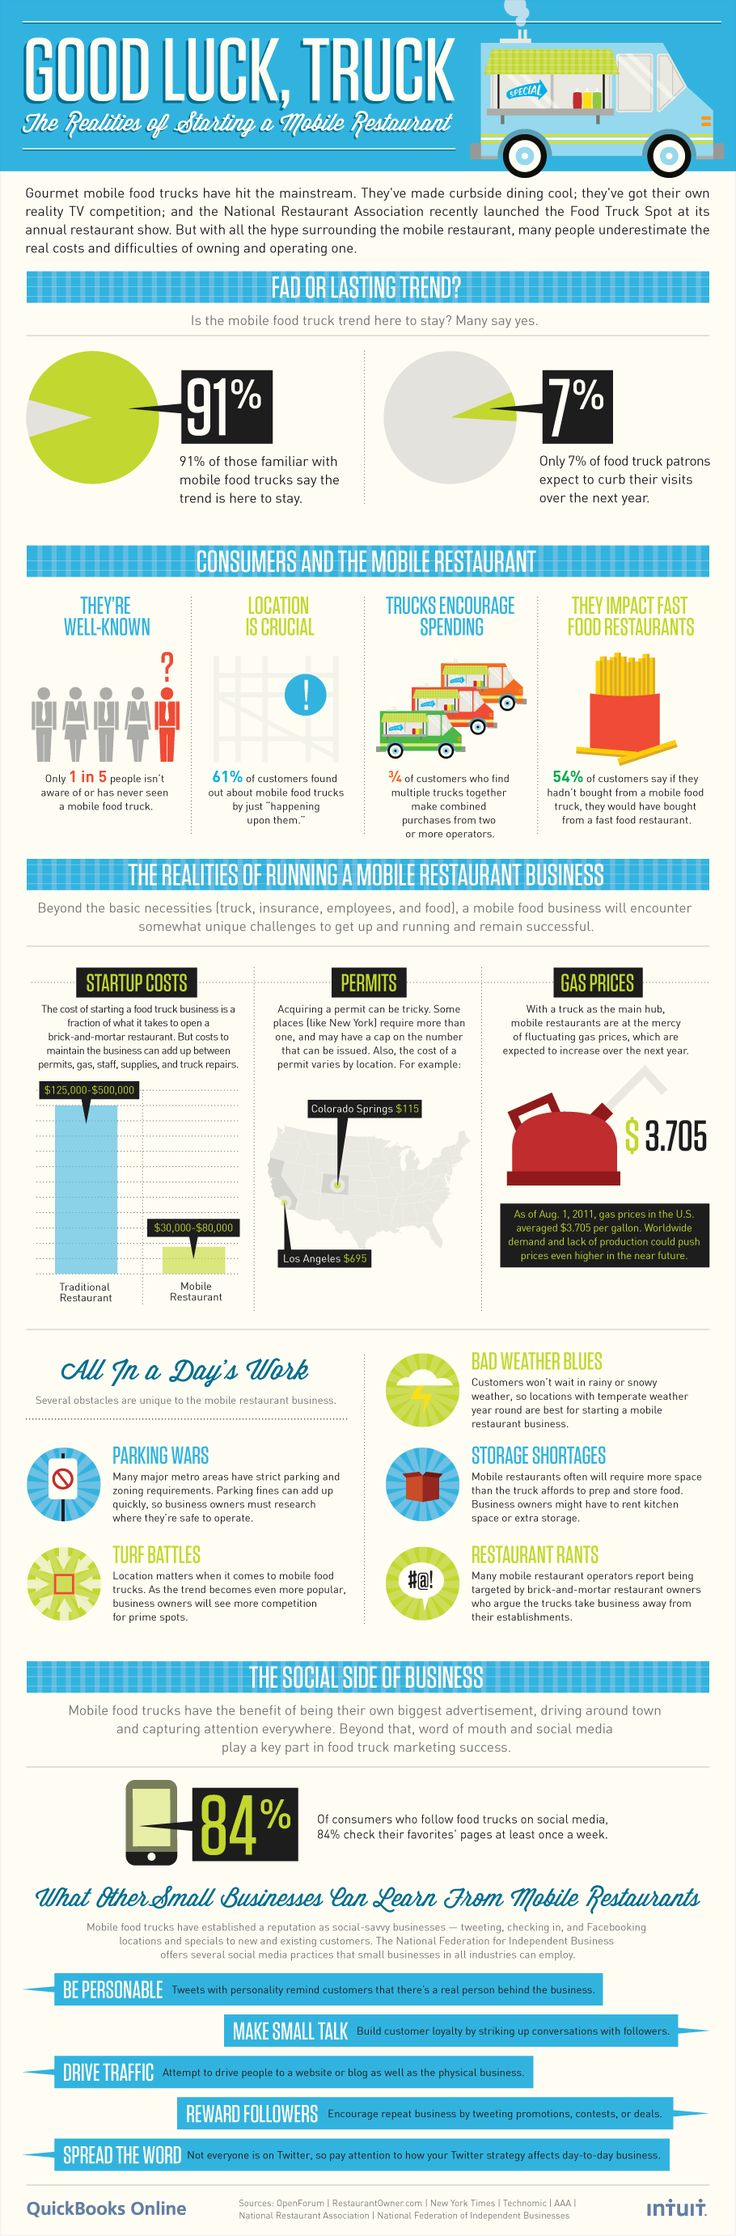 Intuit-infographic-FoodTrucks_v1-2.png (910×2765)